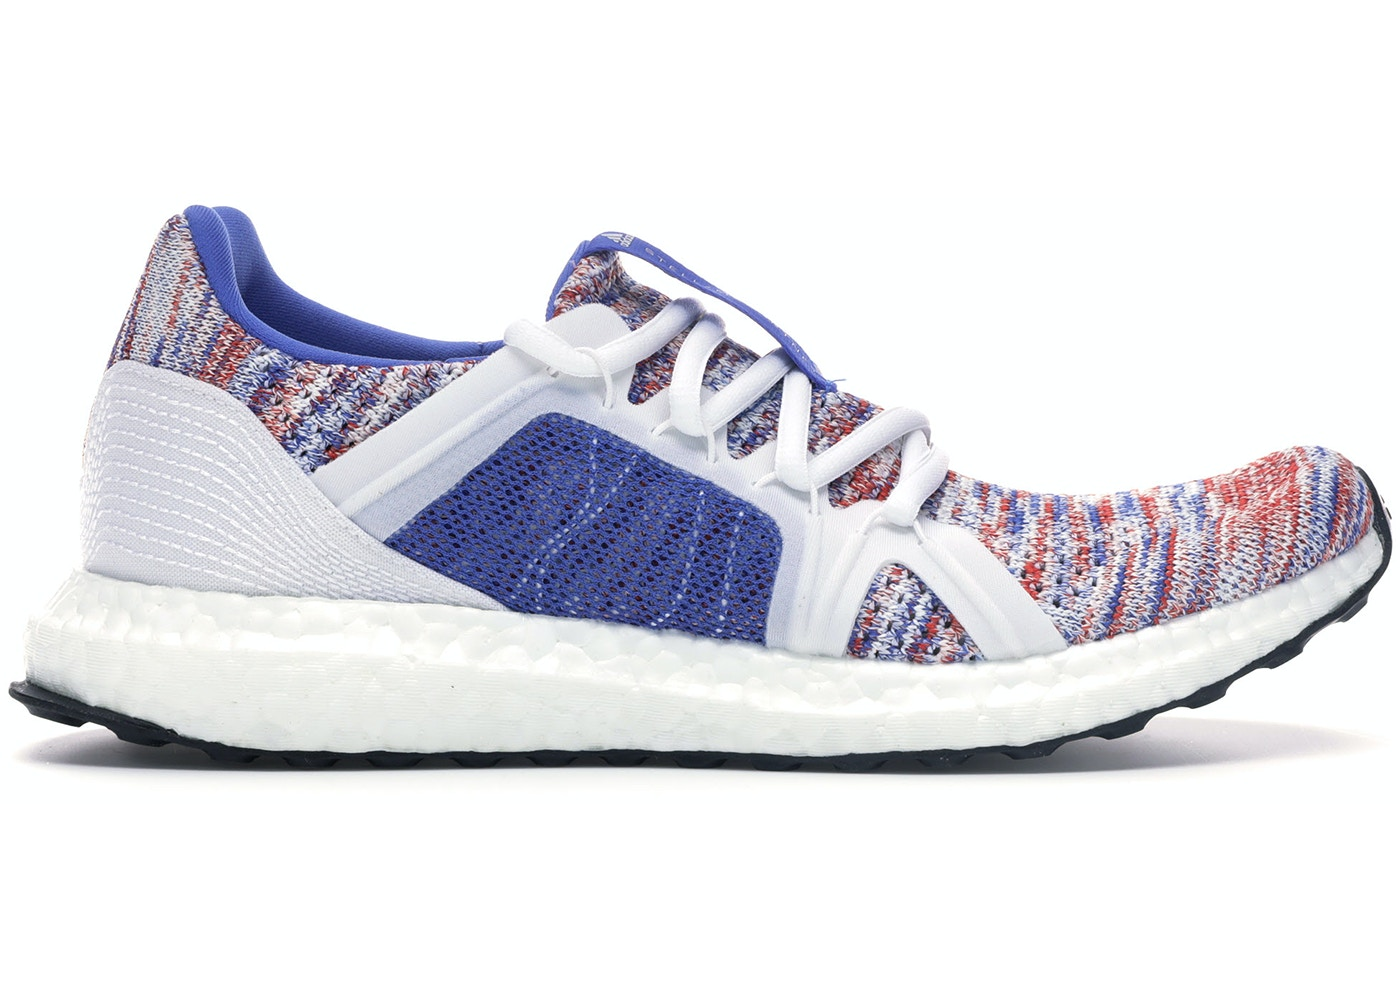 643d8347d adidas Ultra Boost Parley Stella McCartney Hi-Res Blue (W) - CQ1708